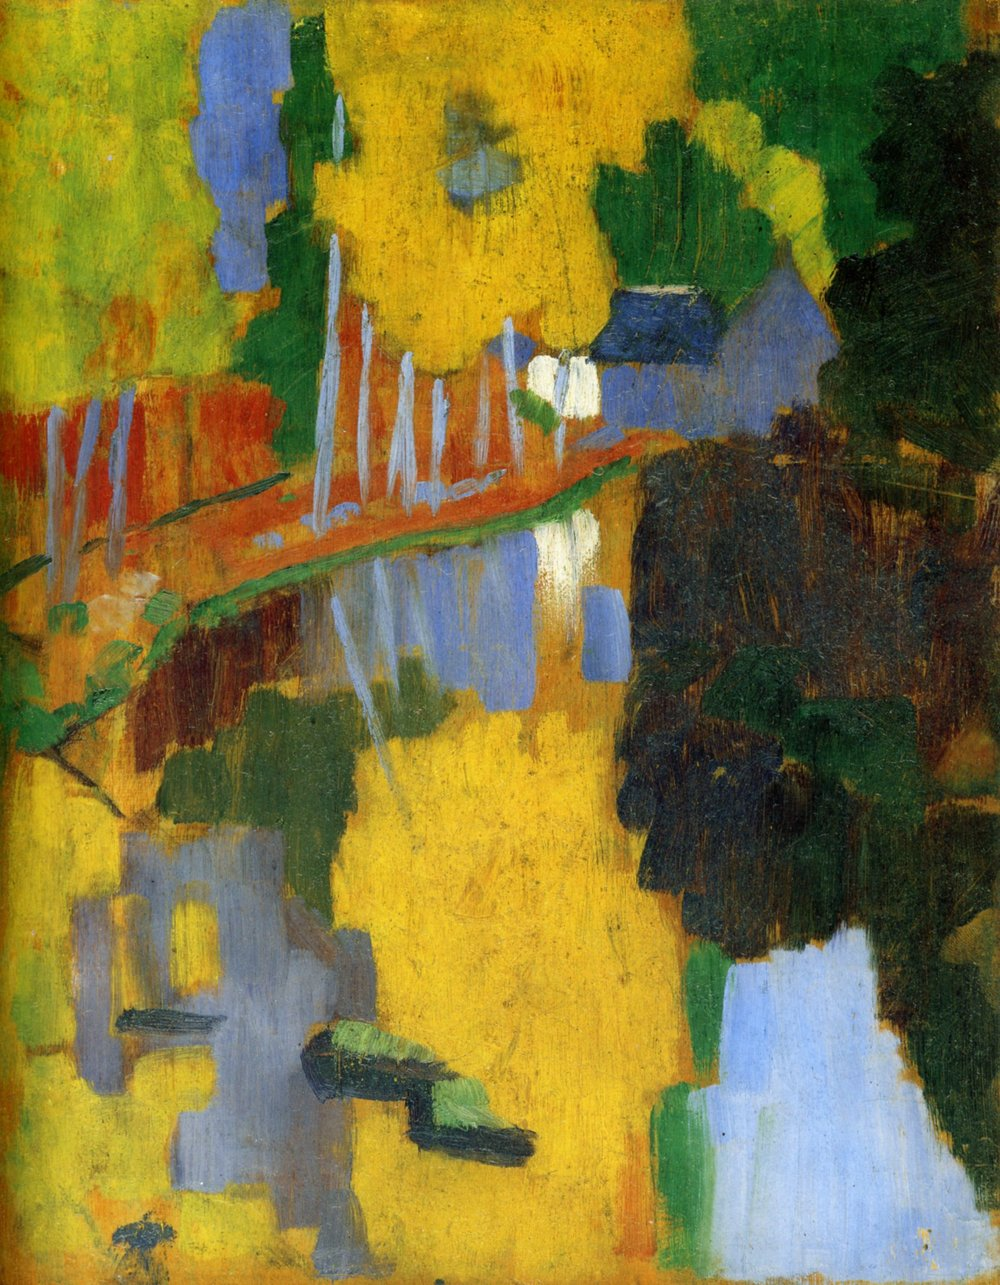 Paul Sérusier  The Talisman / Le Talisman  1888 Oil on wood 27 x 21.5 cm Musée d'Orsay, Paris